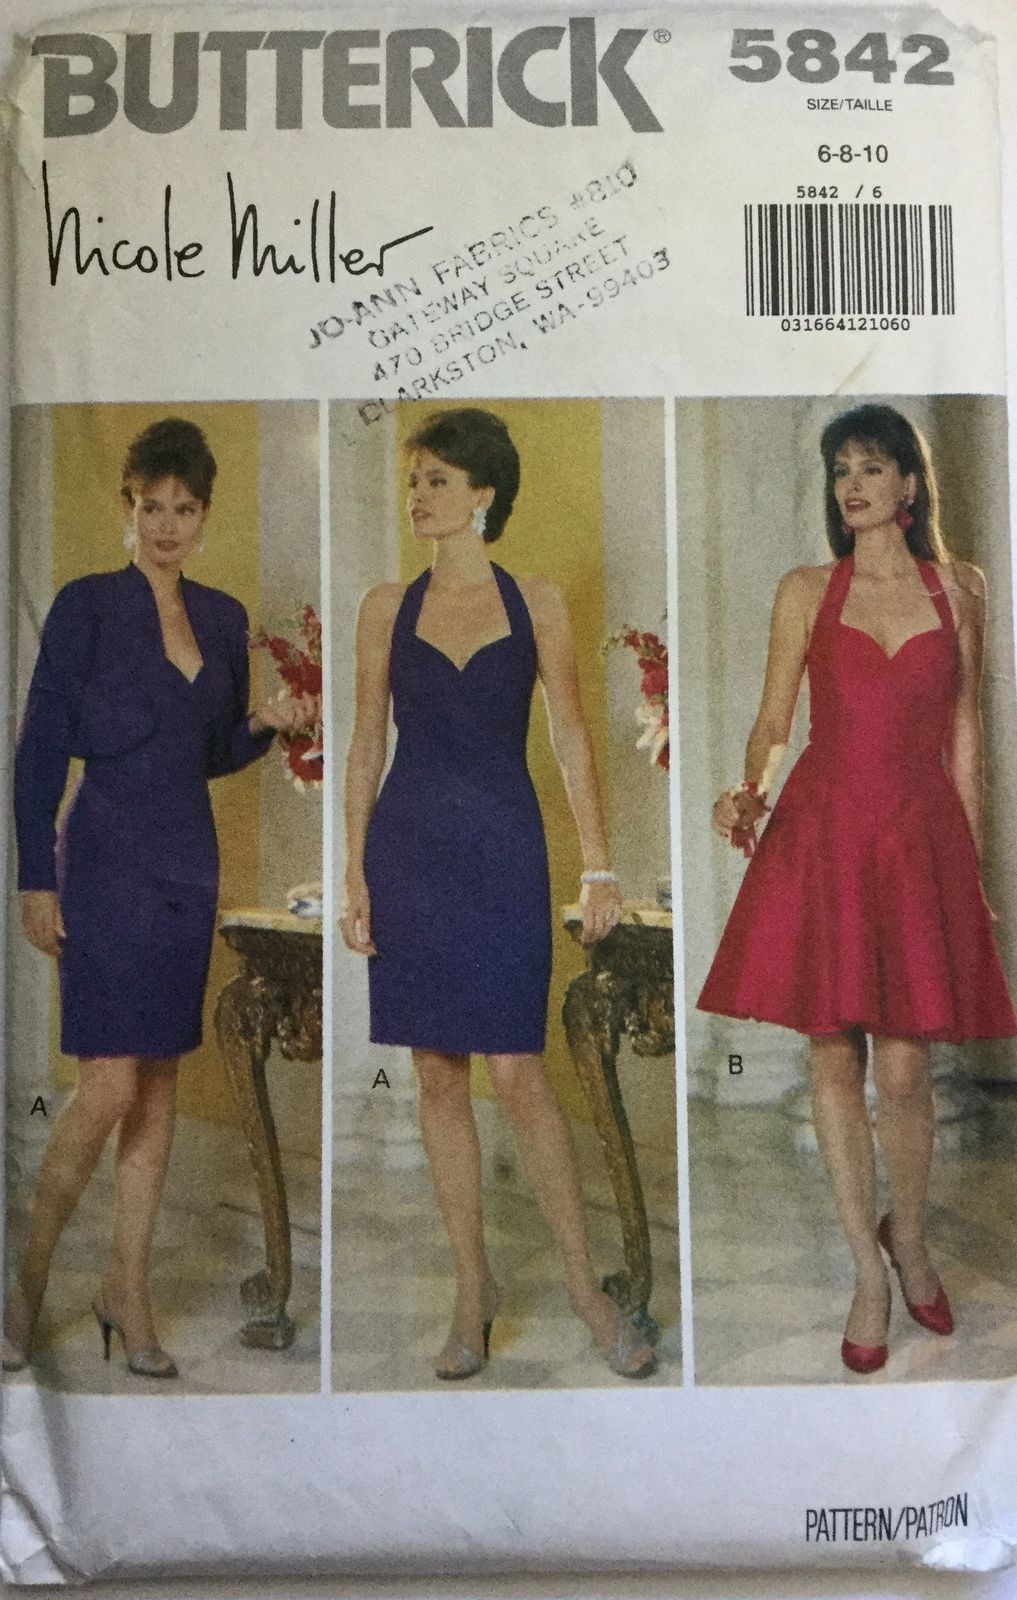 d0f8c5bfc768e Butterick Sewing Patterns, Miss Dress, Bolero Jacket, Nicole Miller, Shrug  Sweater